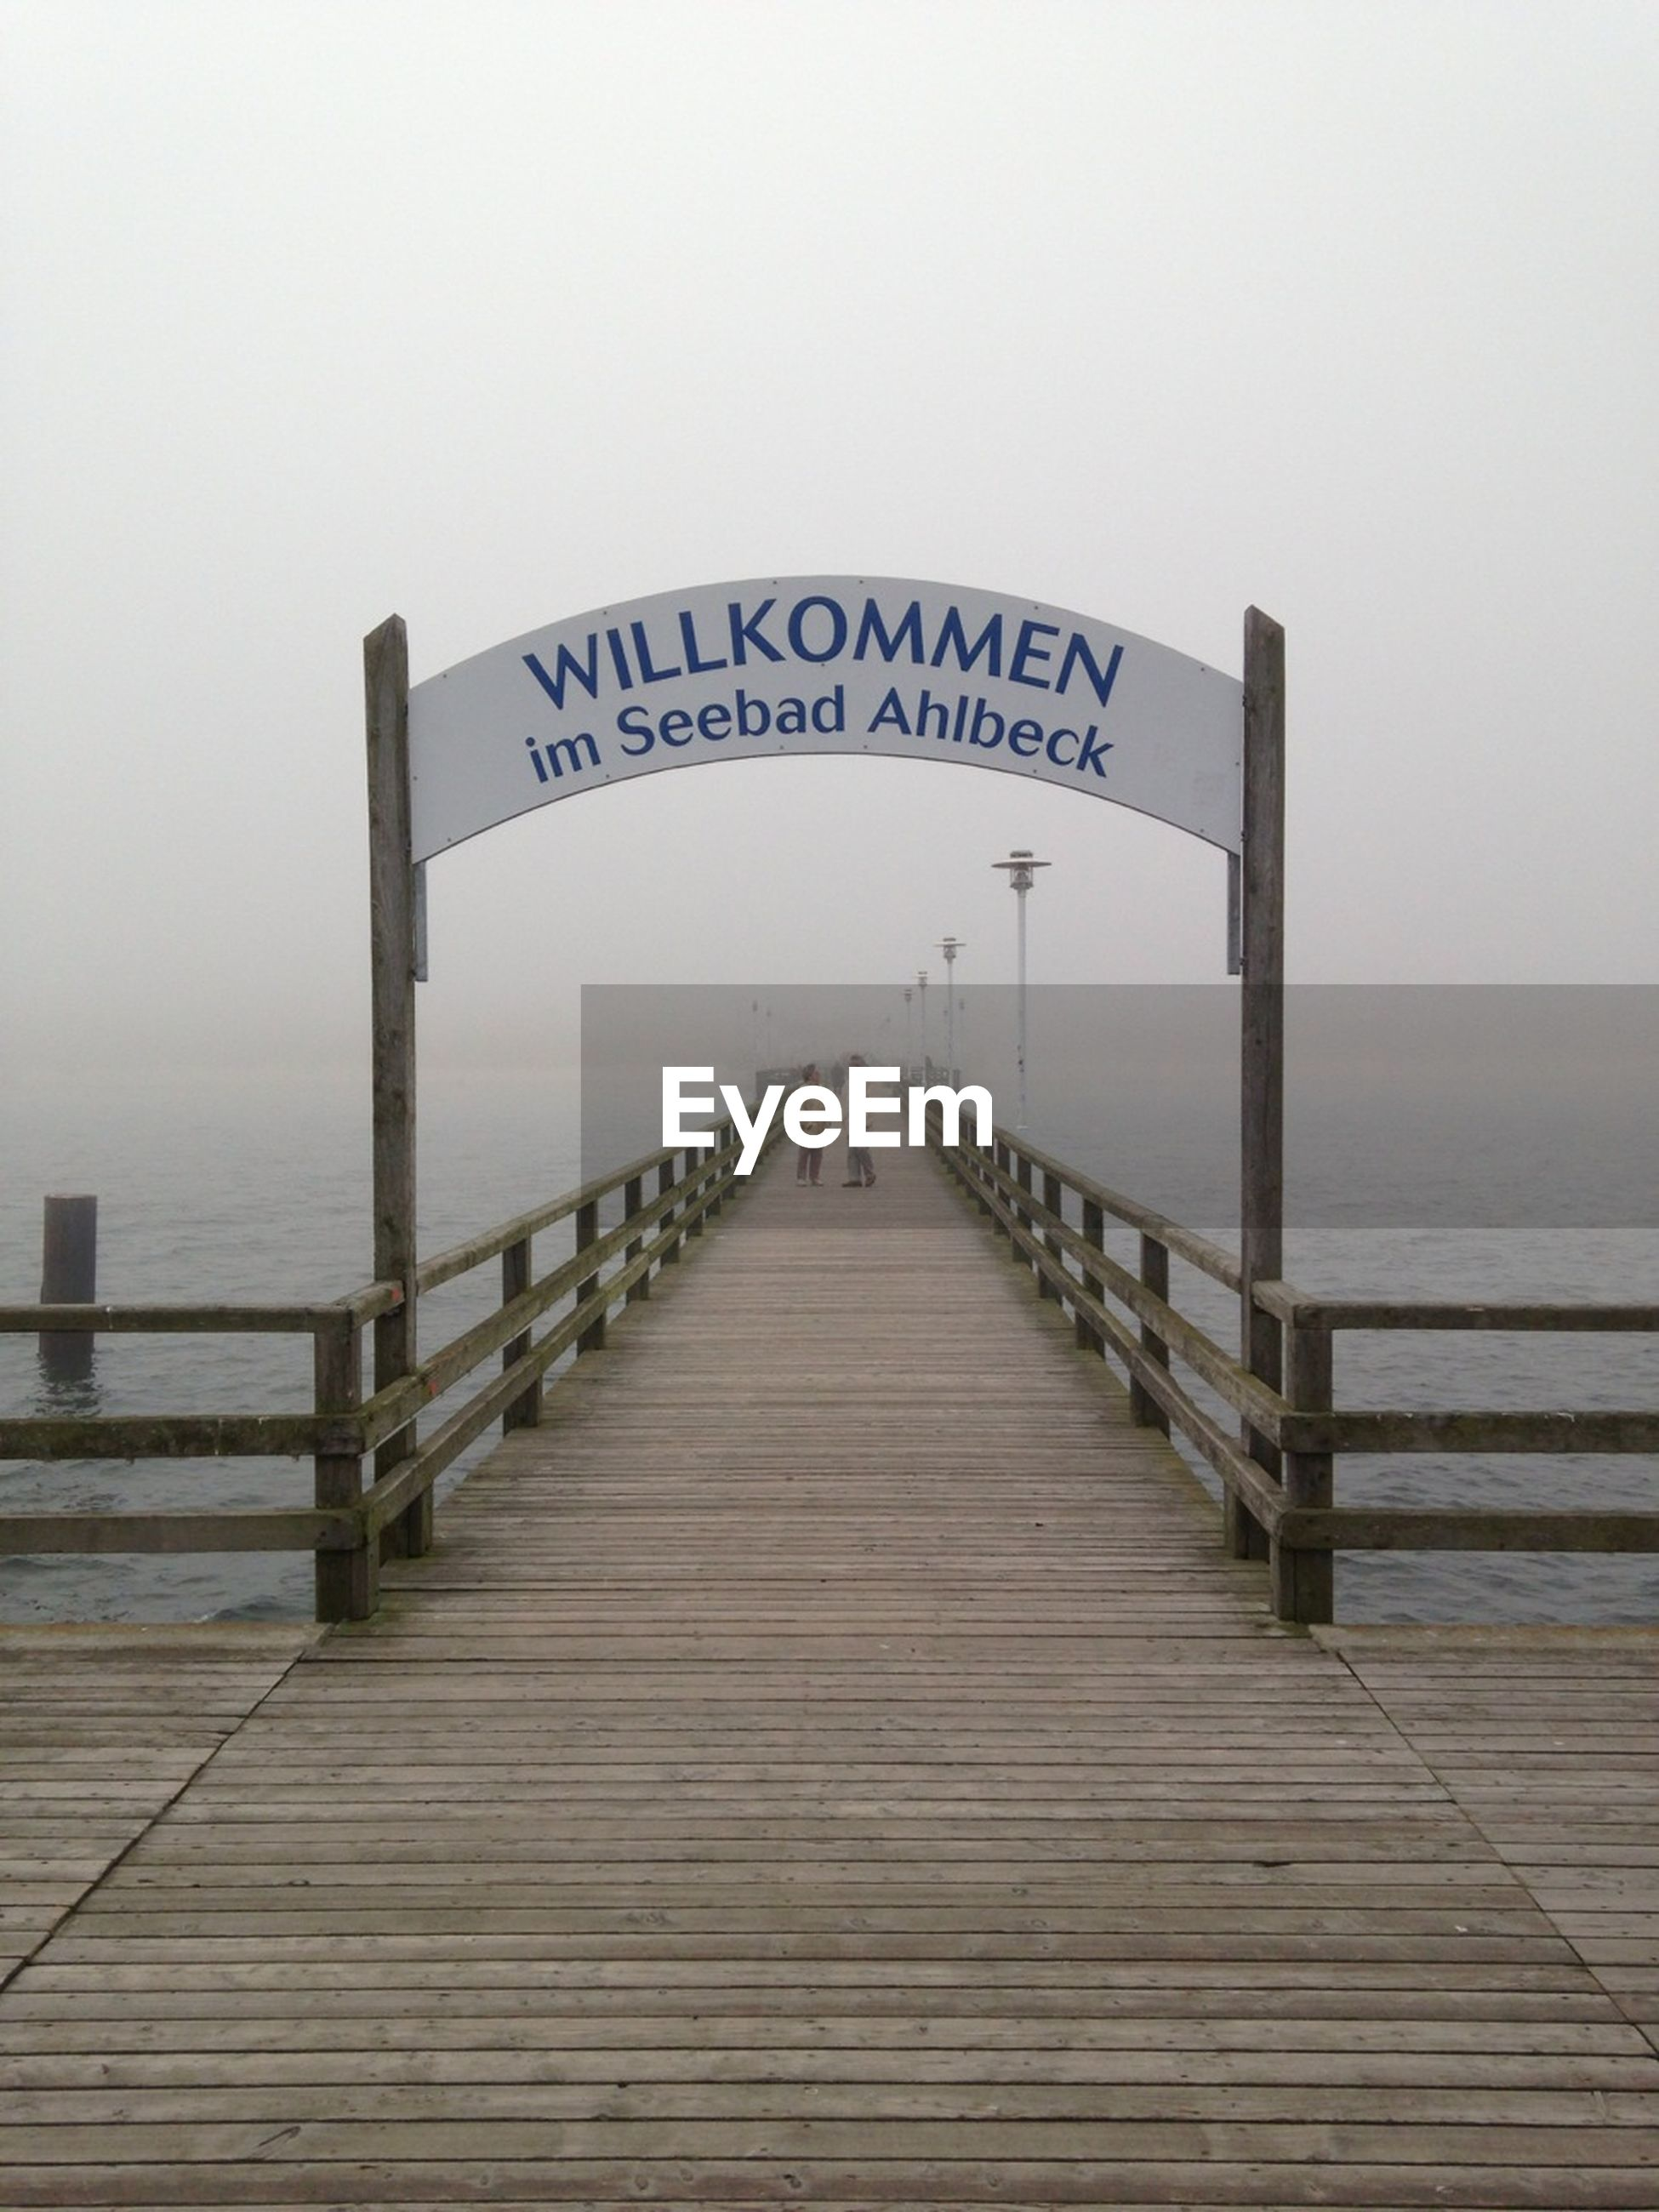 Welcome sign on ahlbeck pier during foggy weather